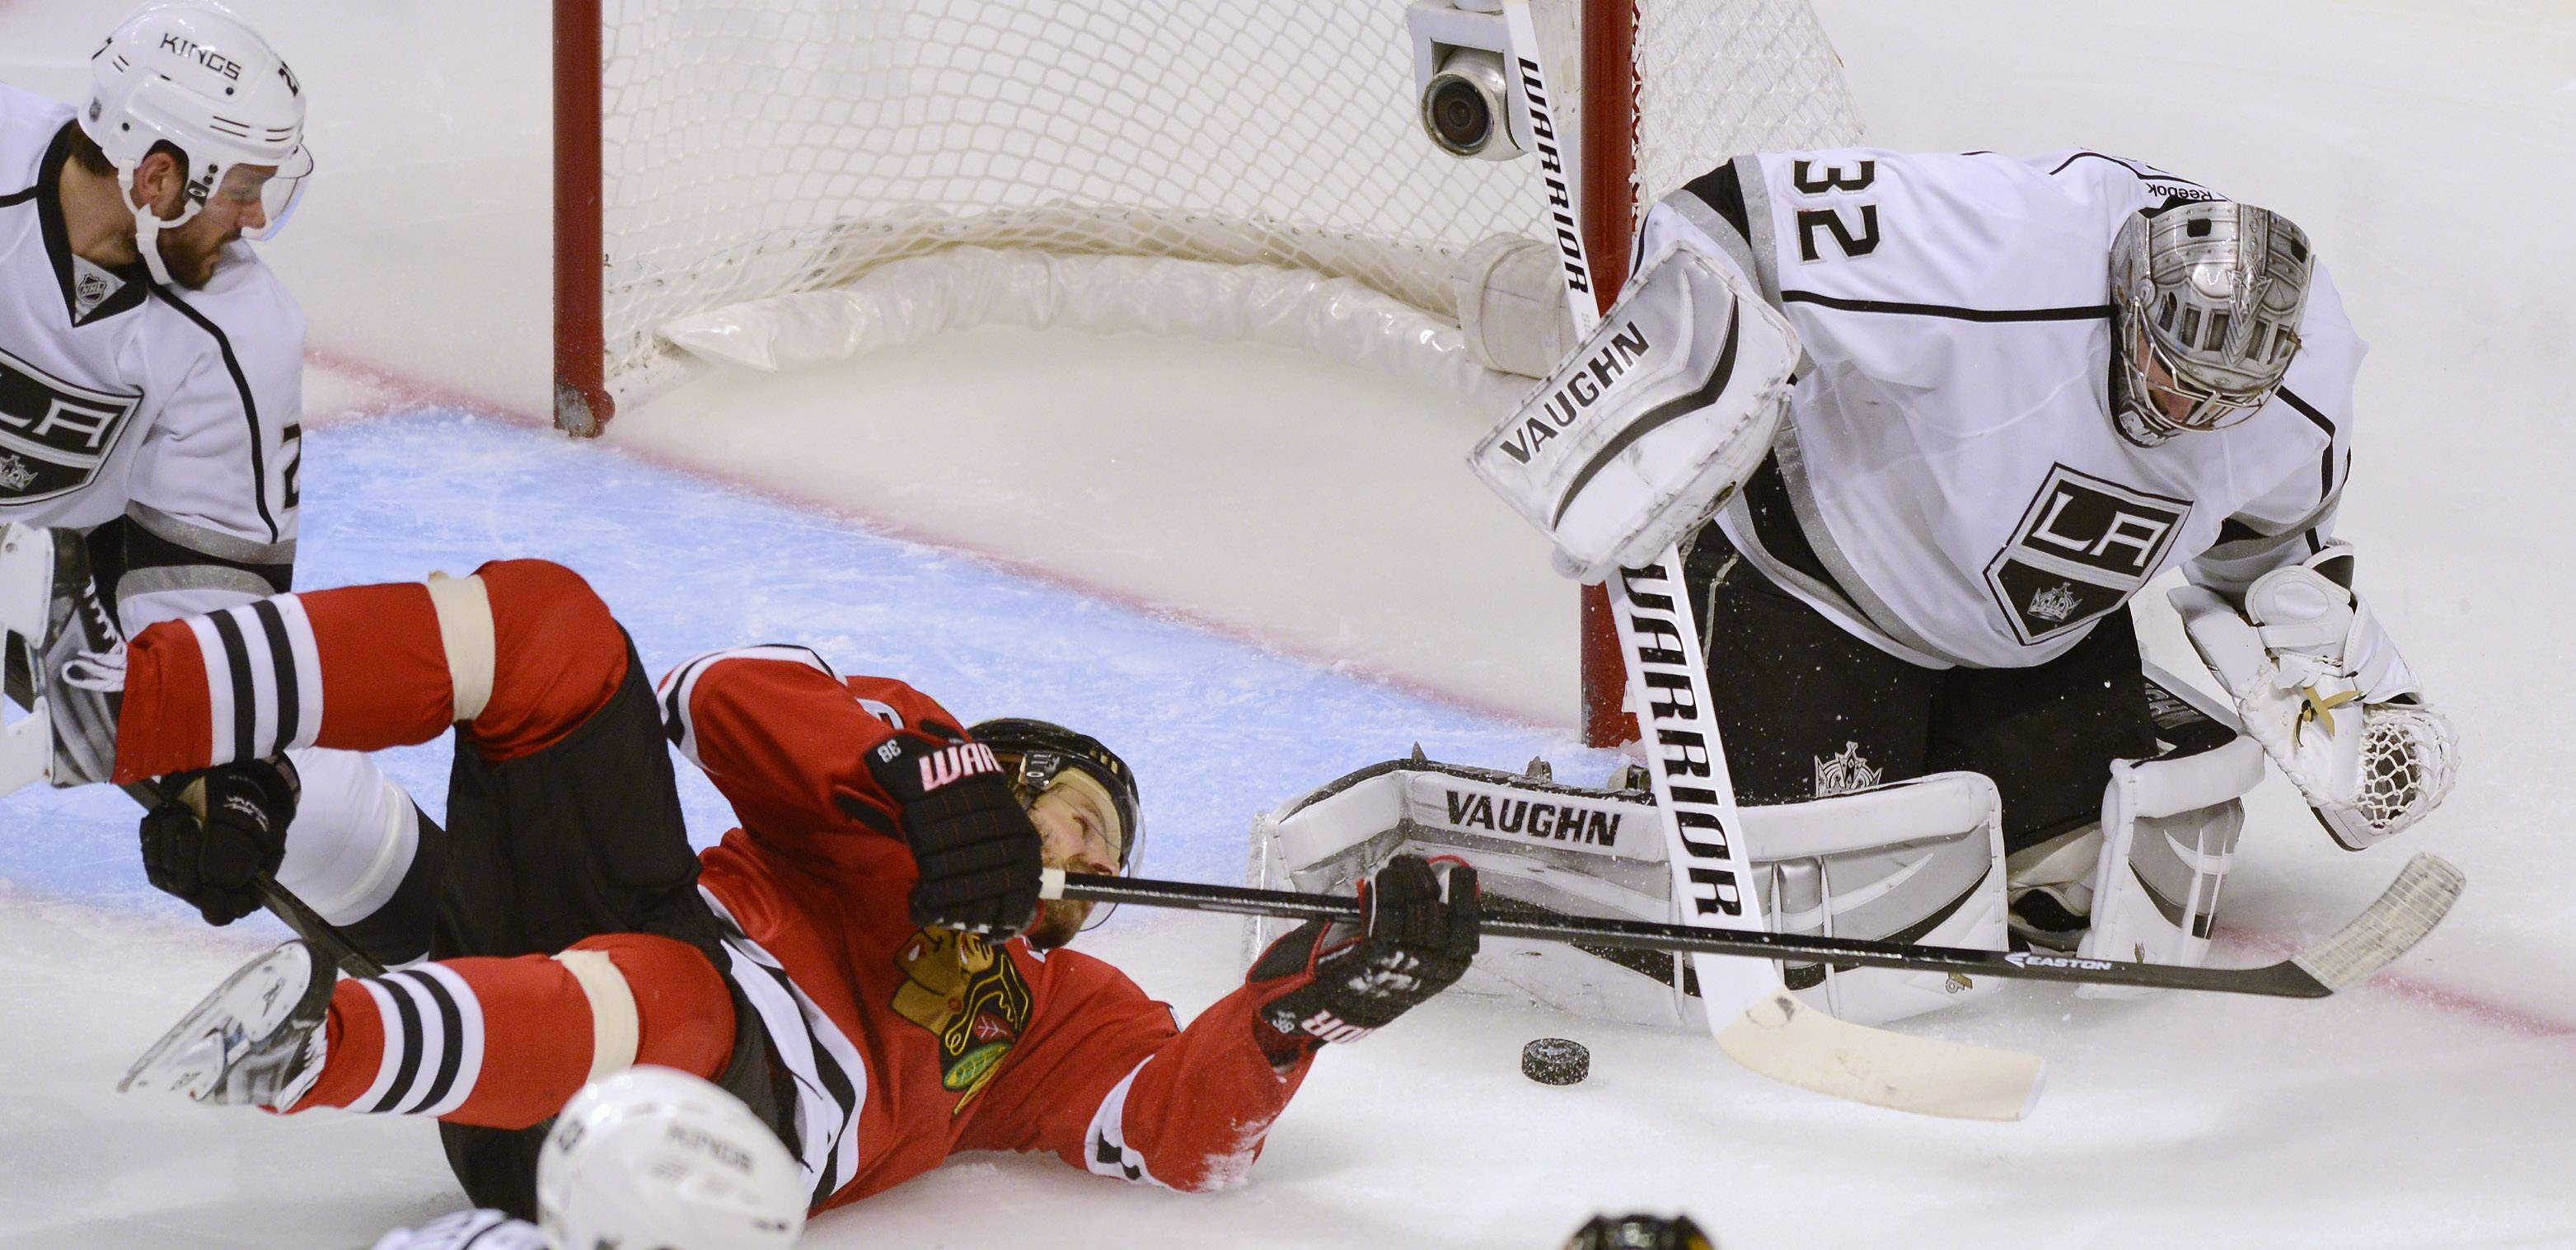 Chicago Blackhawks center Michal Handzus tries to score while sliding on his side as Los Angeles Kings goalie Jonathan Quick makes a save during Sunday's game at the United Center in Chicago.